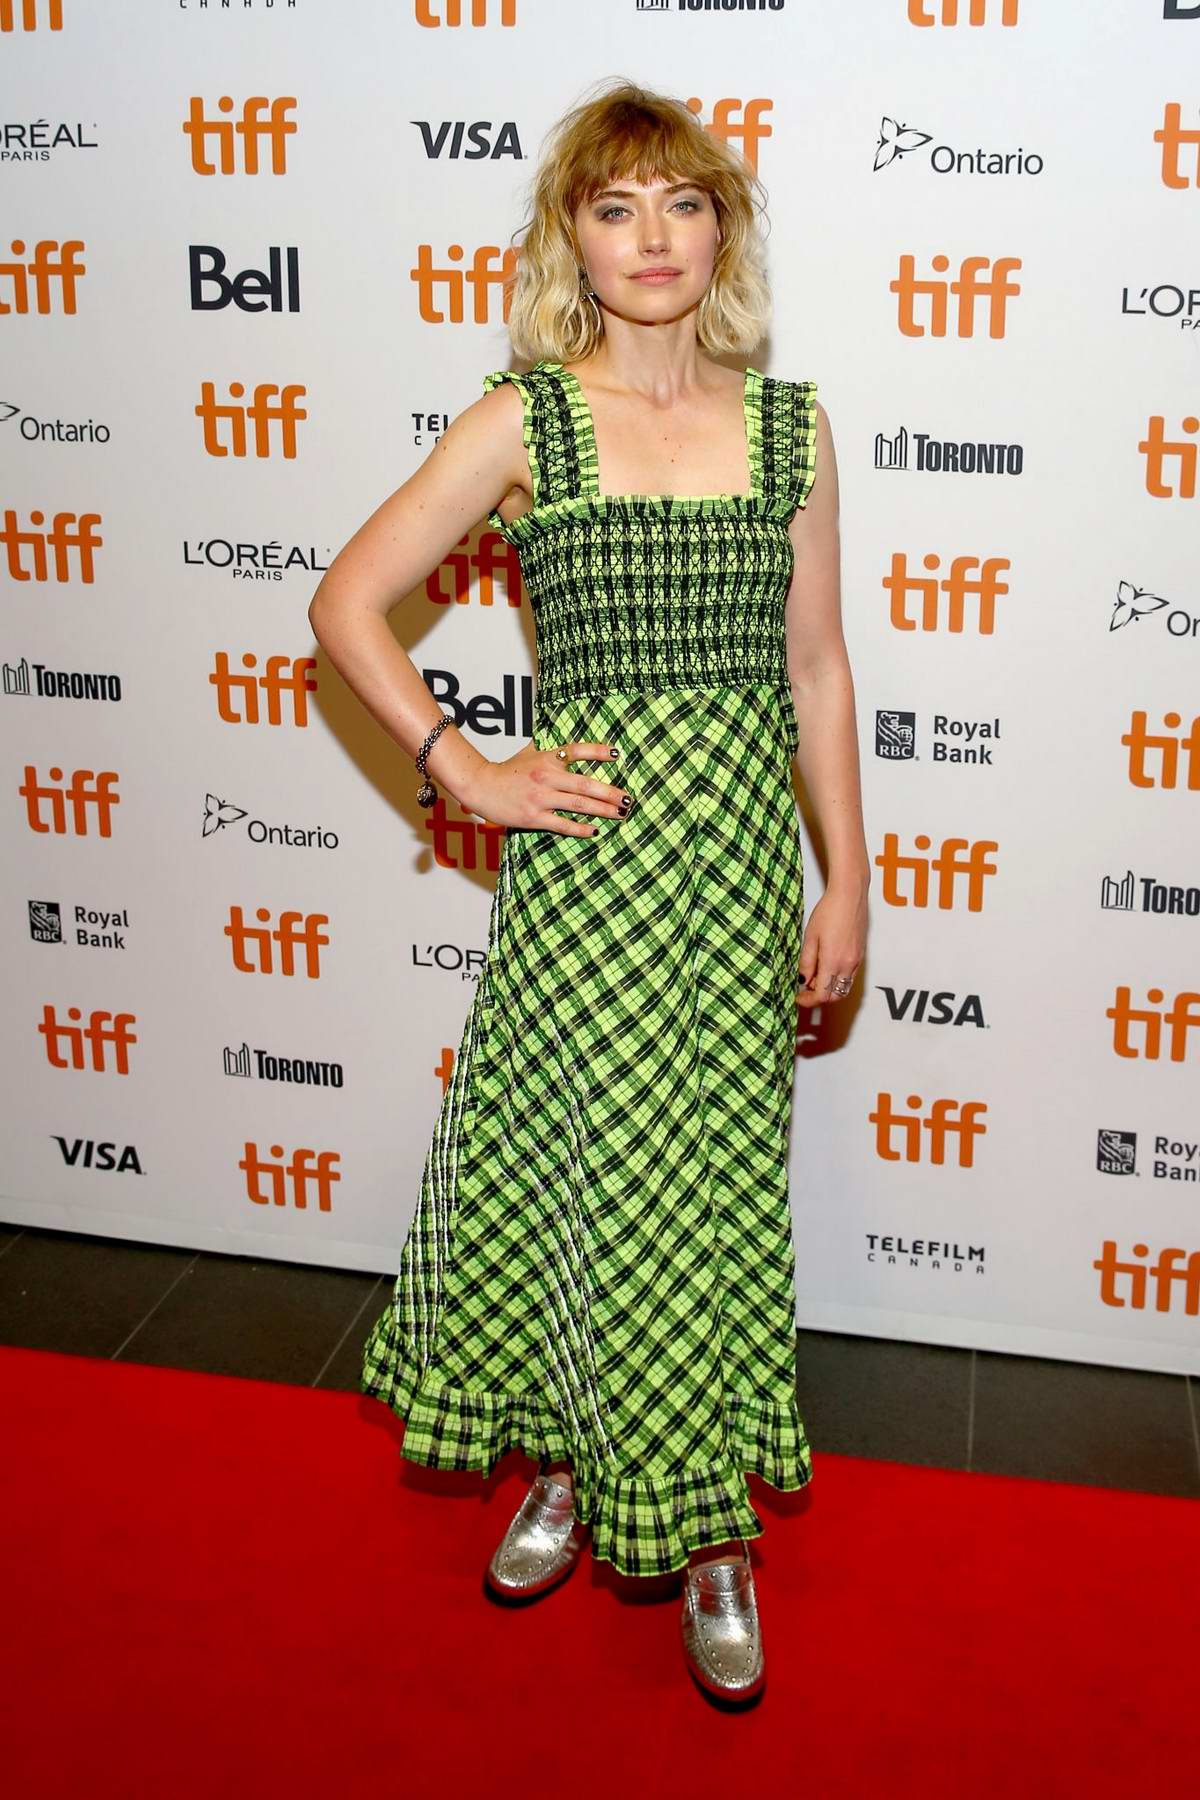 Imogen Poots attends the 'Castle In The Ground' premiere during the 2019 Toronto International Film Festival in Toronto, Canada